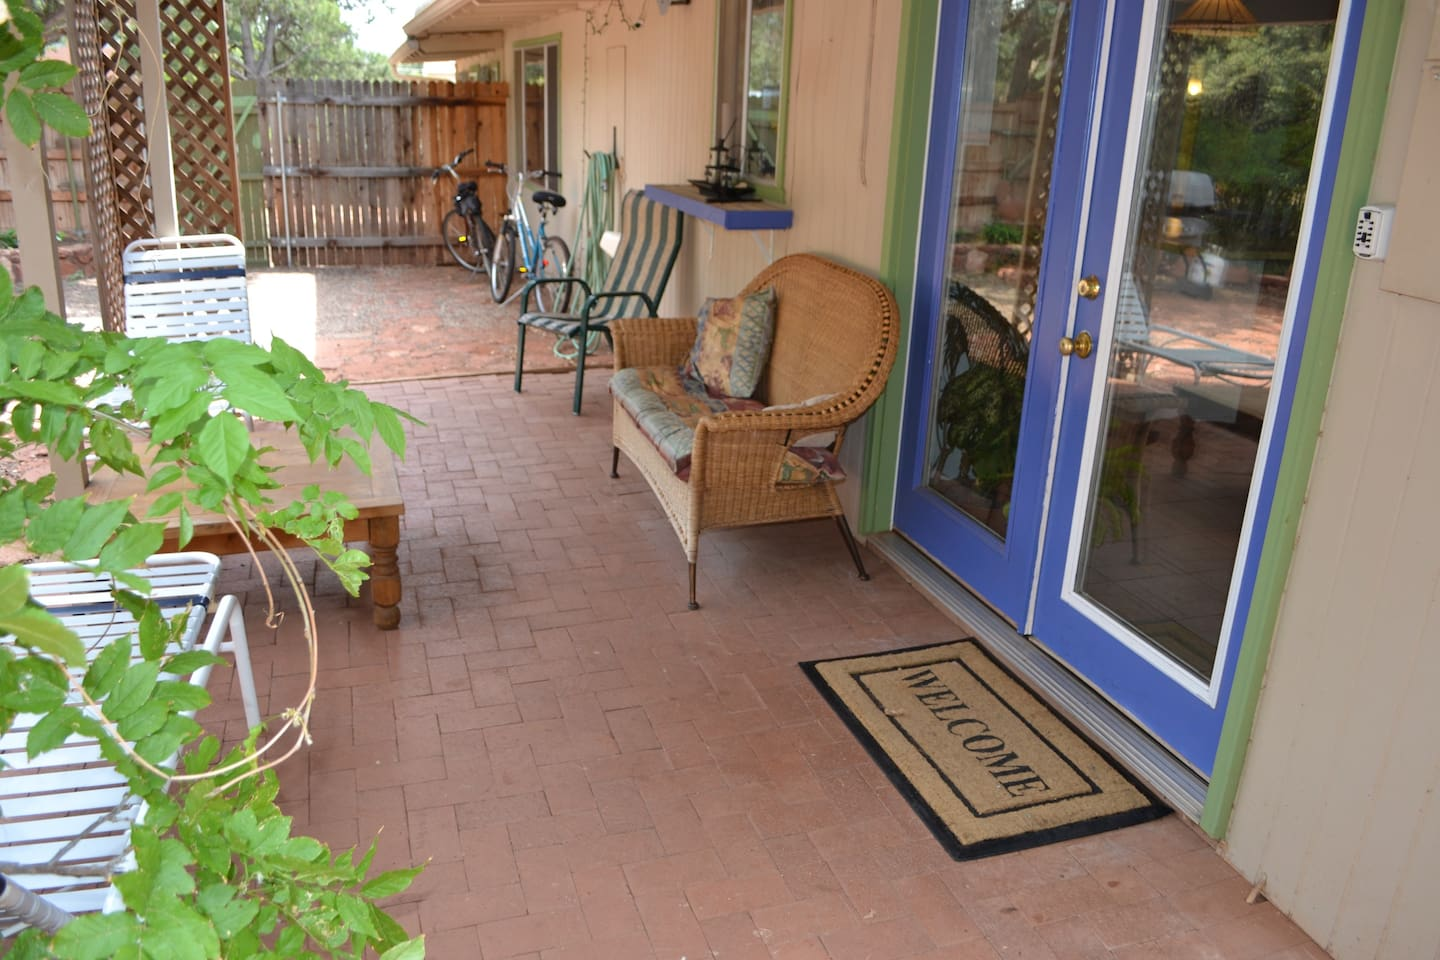 Outdoor patio with bikes for use